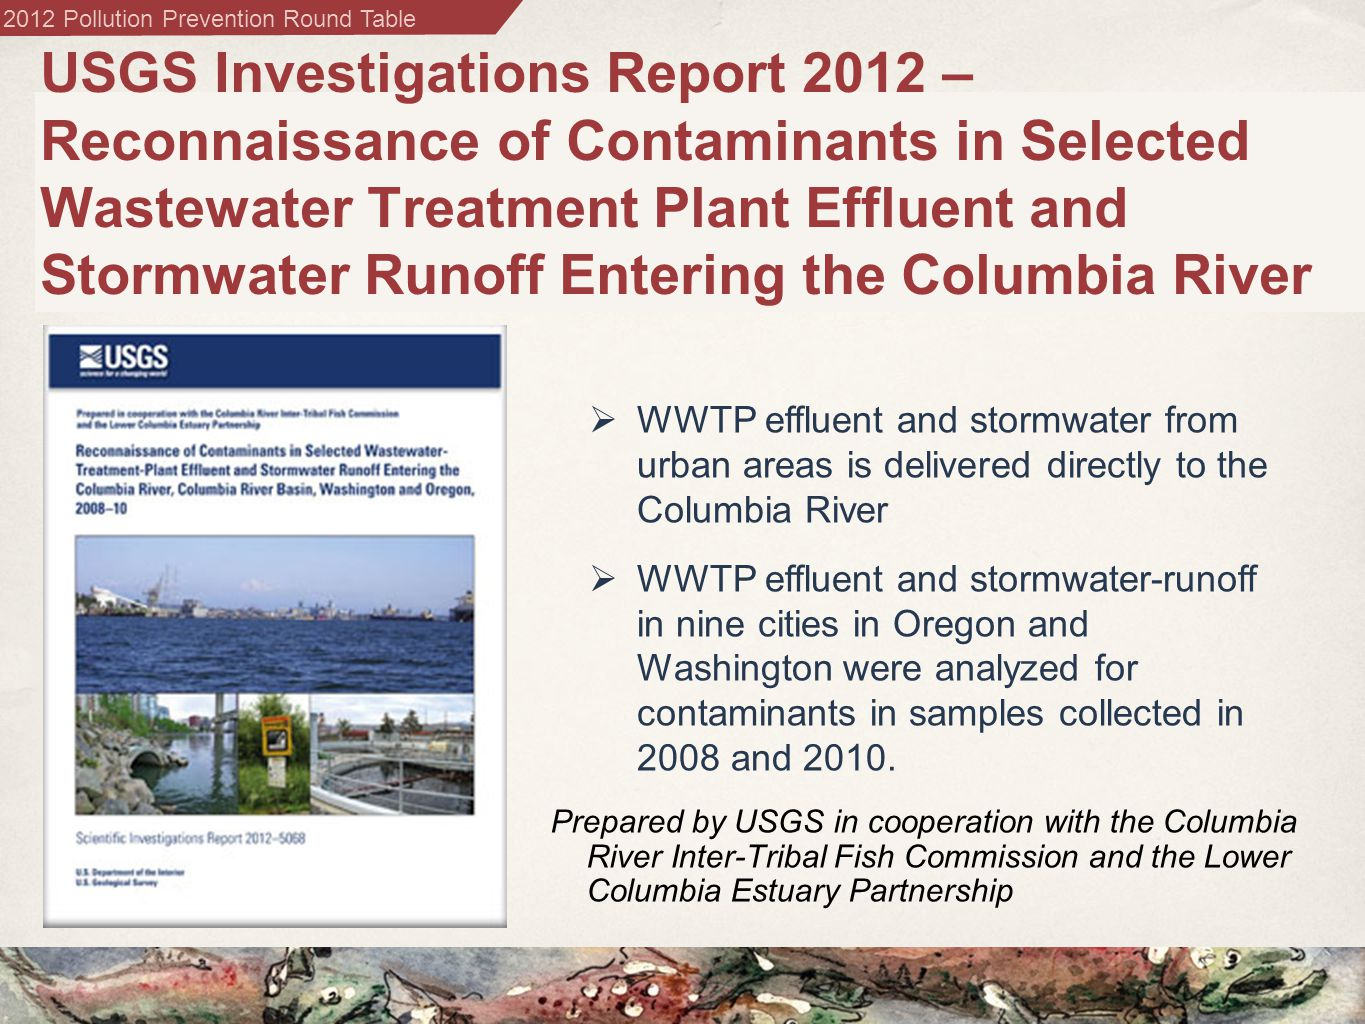 2012 Pollution Prevention Round Table USGS Investigations Report 2012 – Reconnaissance of Contaminants in Selected Wastewater Treatment Plant Effluent and Stormwater Runoff Entering the Columbia River Prepared by USGS in cooperation with the Columbia River Inter-Tribal Fish Commission and the Lower Columbia Estuary Partnership  WWTP effluent and stormwater from urban areas is delivered directly to the Columbia River  WWTP effluent and stormwater-runoff in nine cities in Oregon and Washington were analyzed for contaminants in samples collected in 2008 and 2010.